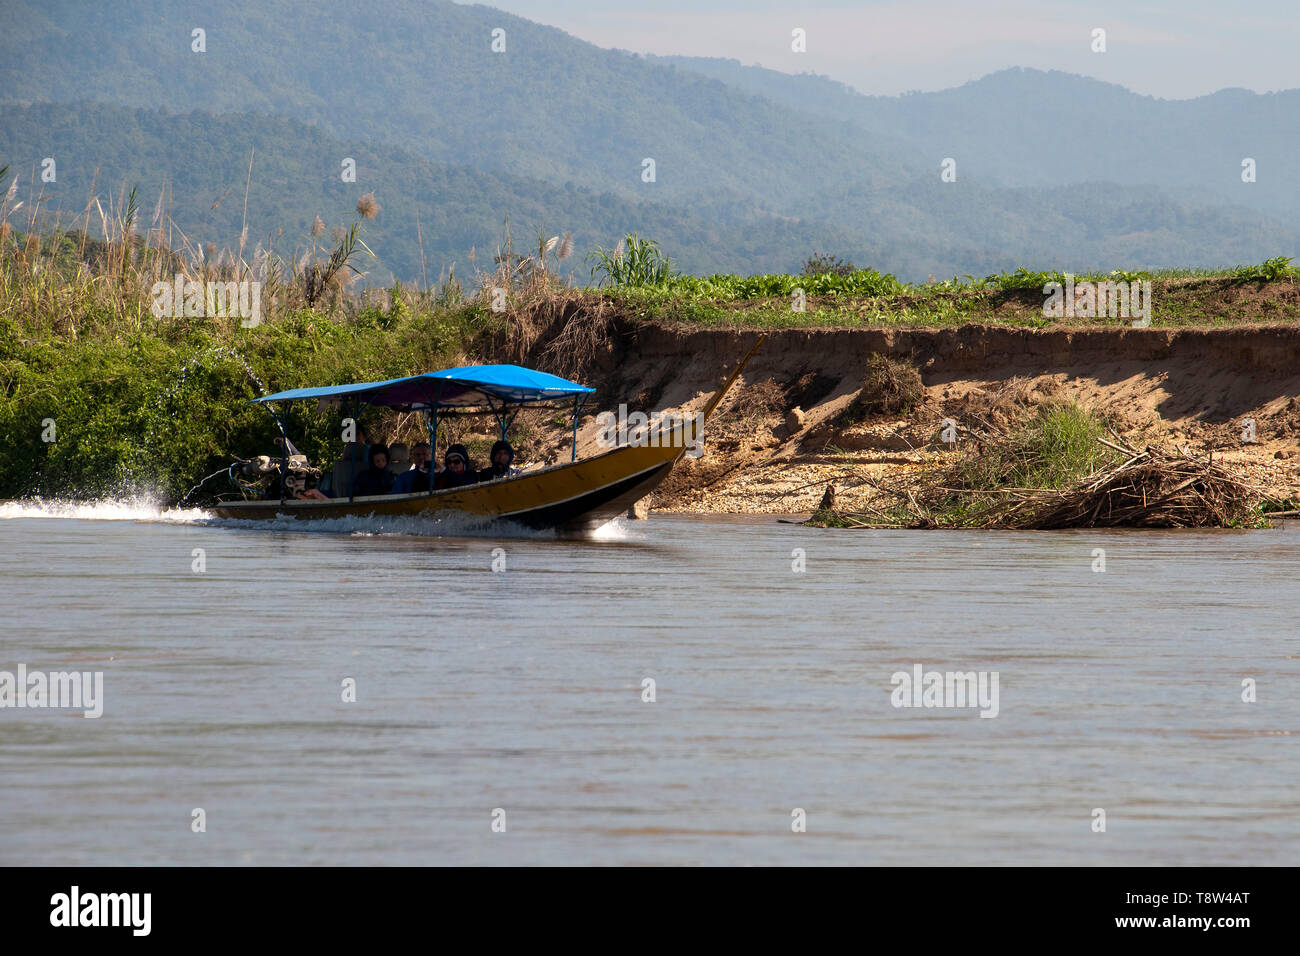 Kok River Thailand Jan 4 2019, long boat with passengers travelling up river - Stock Image